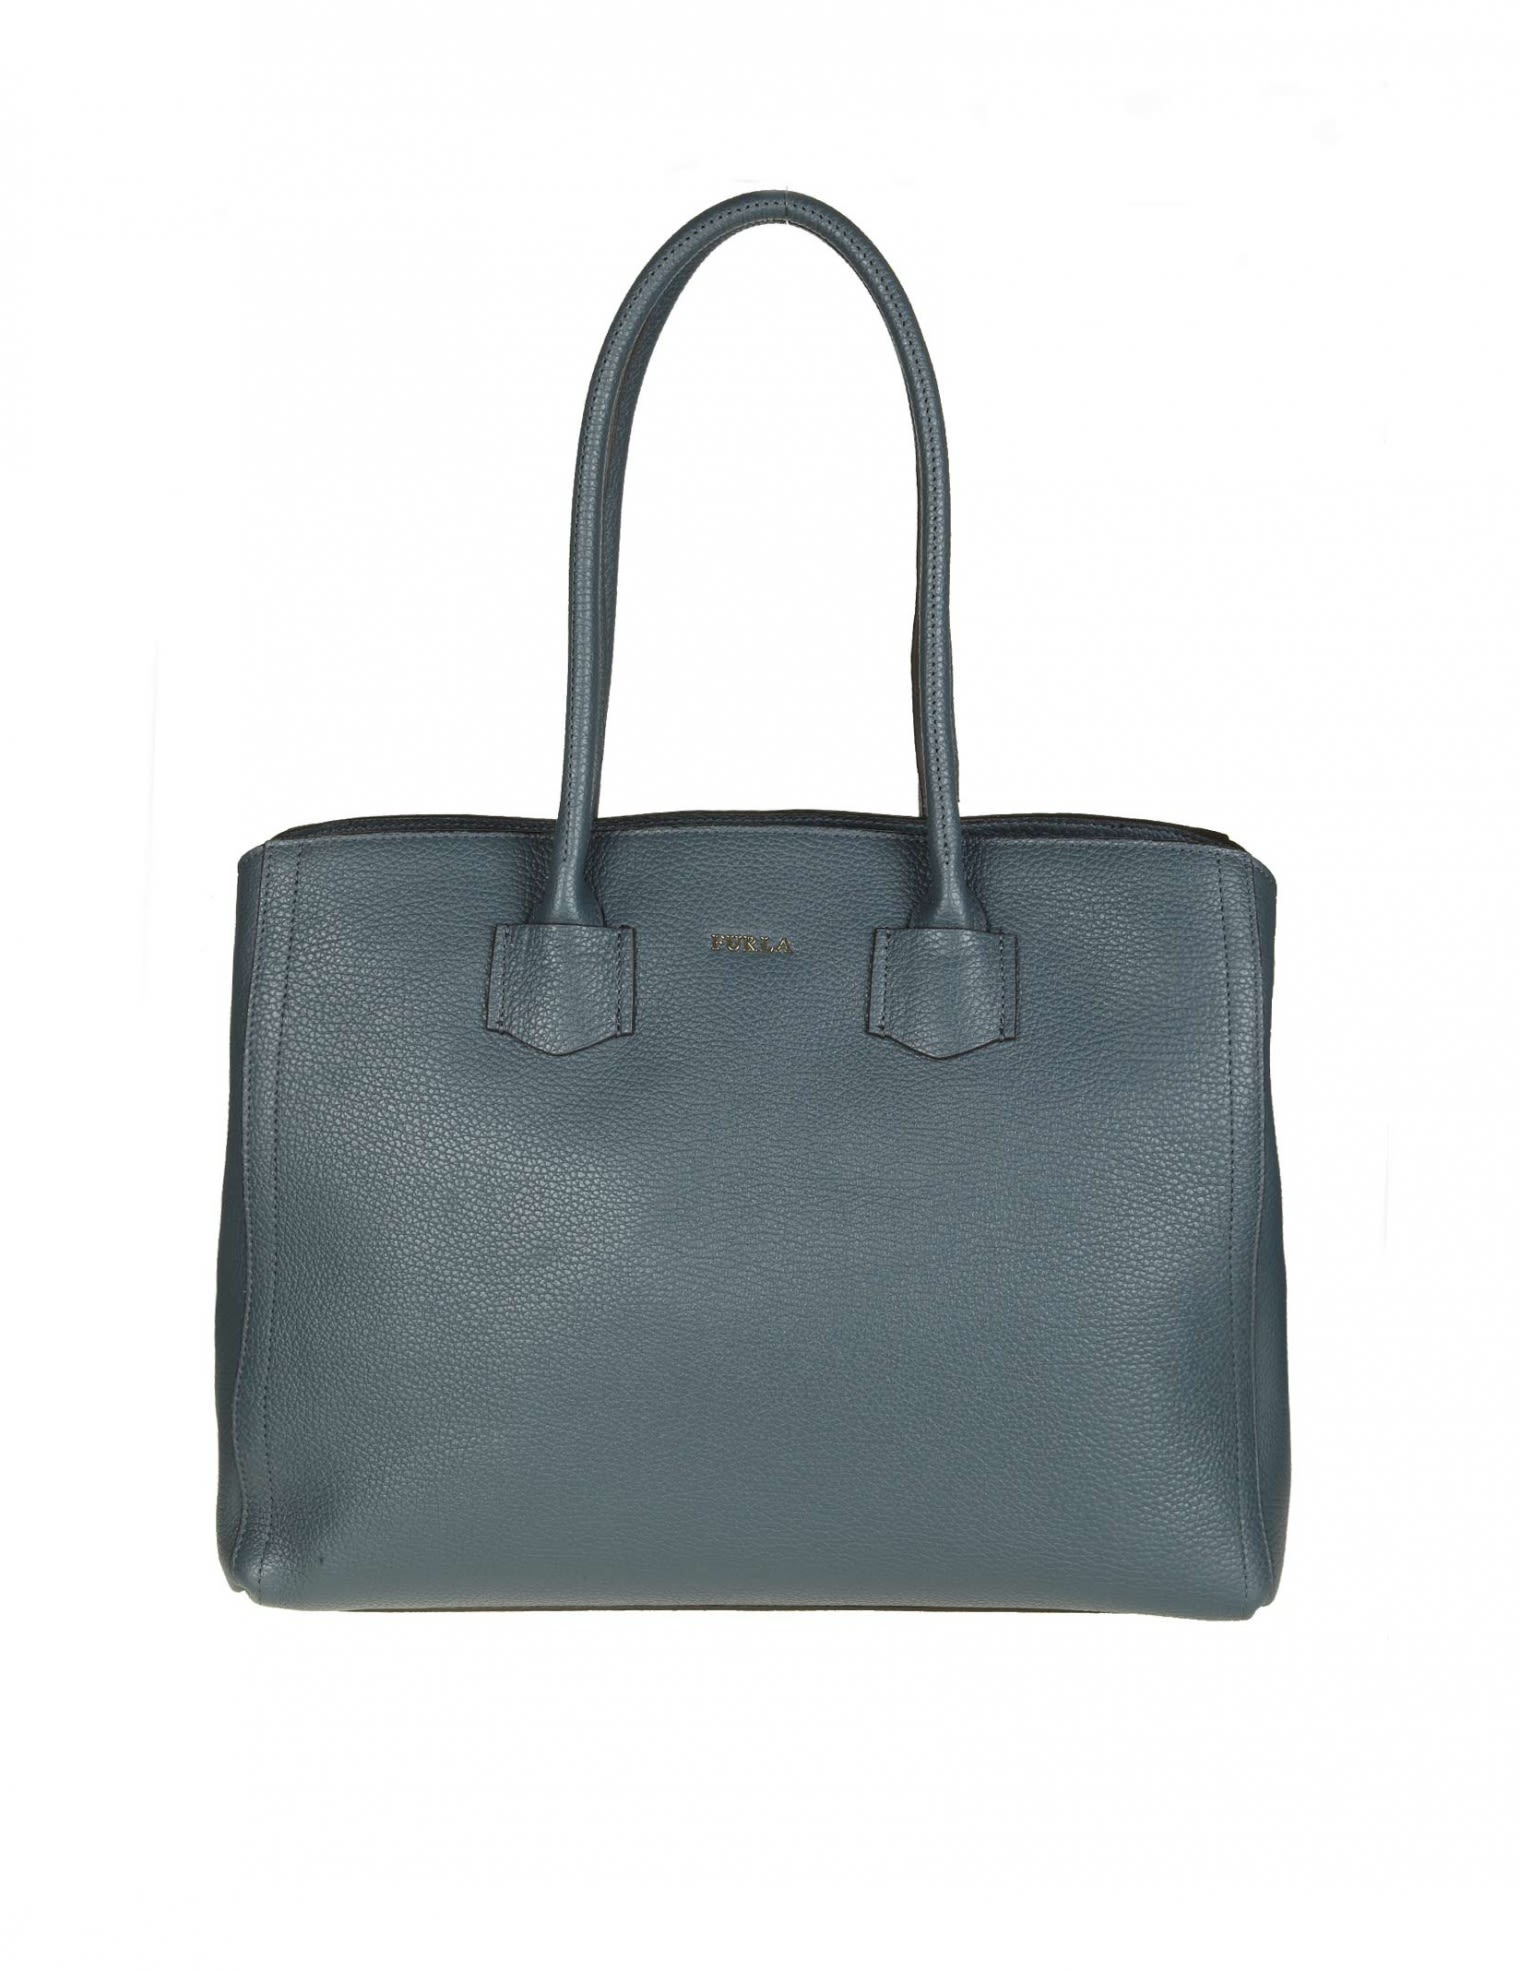 "Furla Bags SHOPPING ""ALBA L"" IN BLUE LEATHER"